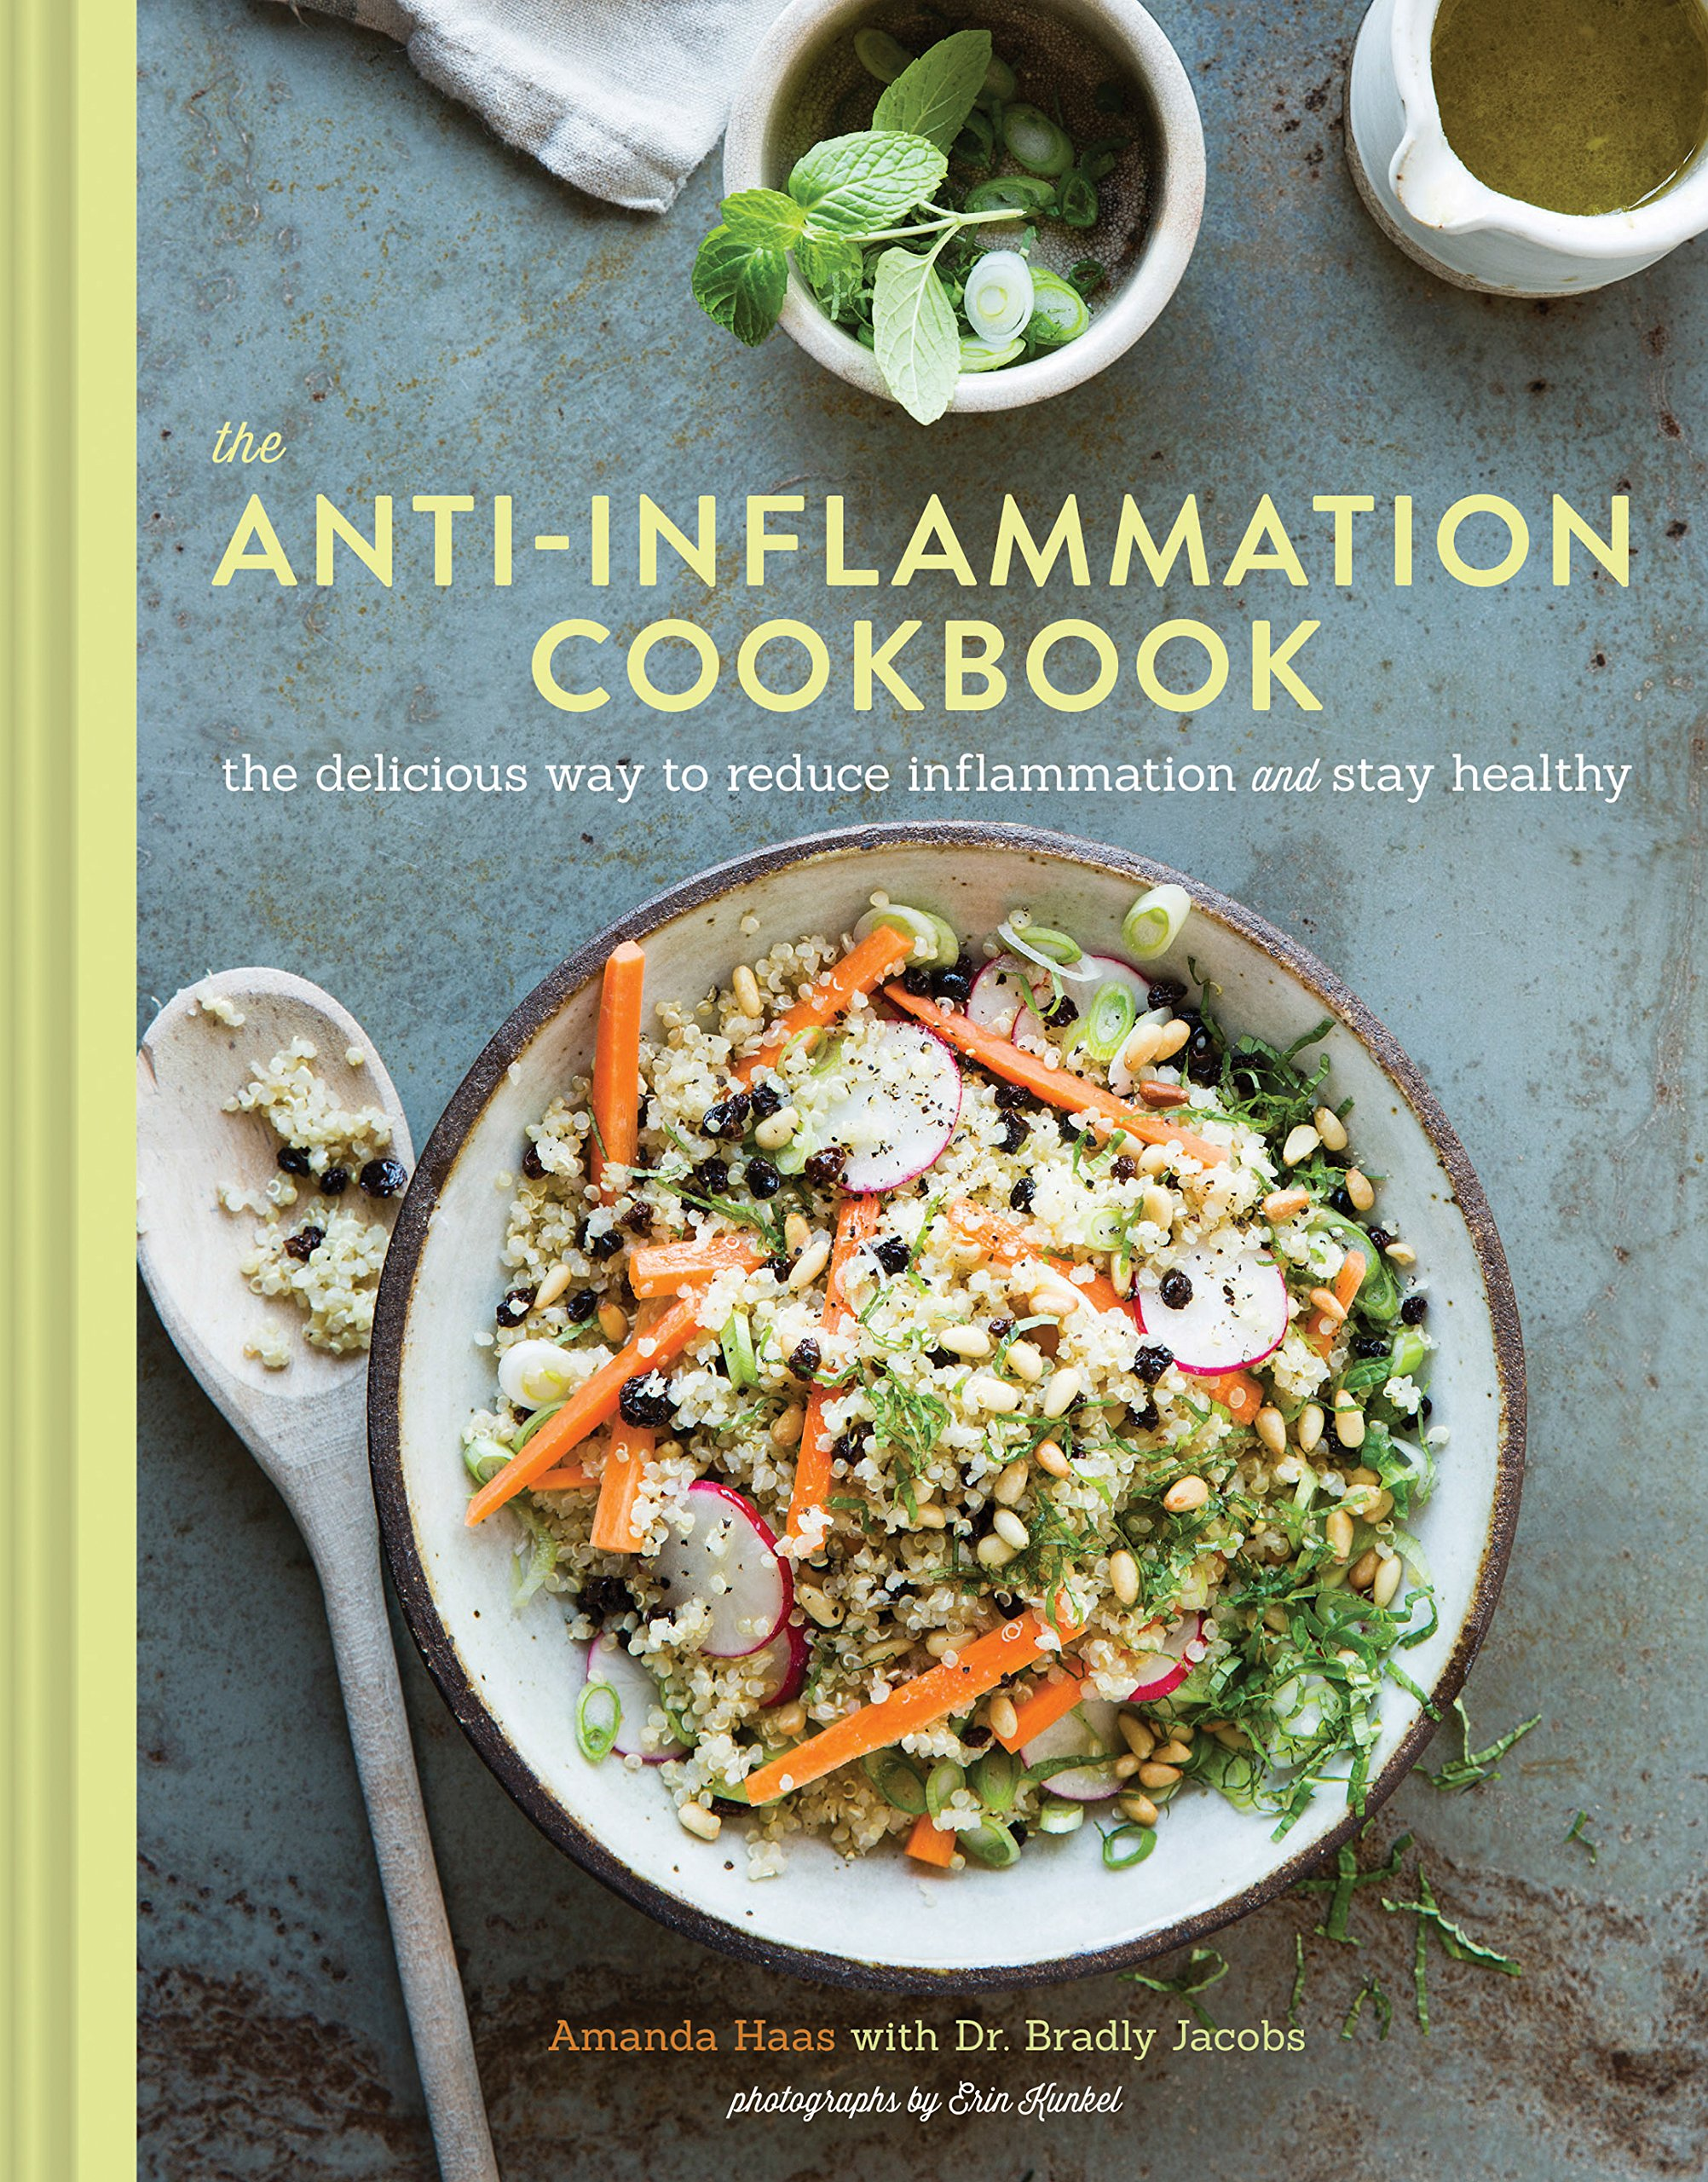 The anti inflammation cookbook the delicious way to reduce the anti inflammation cookbook the delicious way to reduce inflammation and stay healthy amanda haas bradly jacobs erin kunkel 9781452139883 forumfinder Gallery